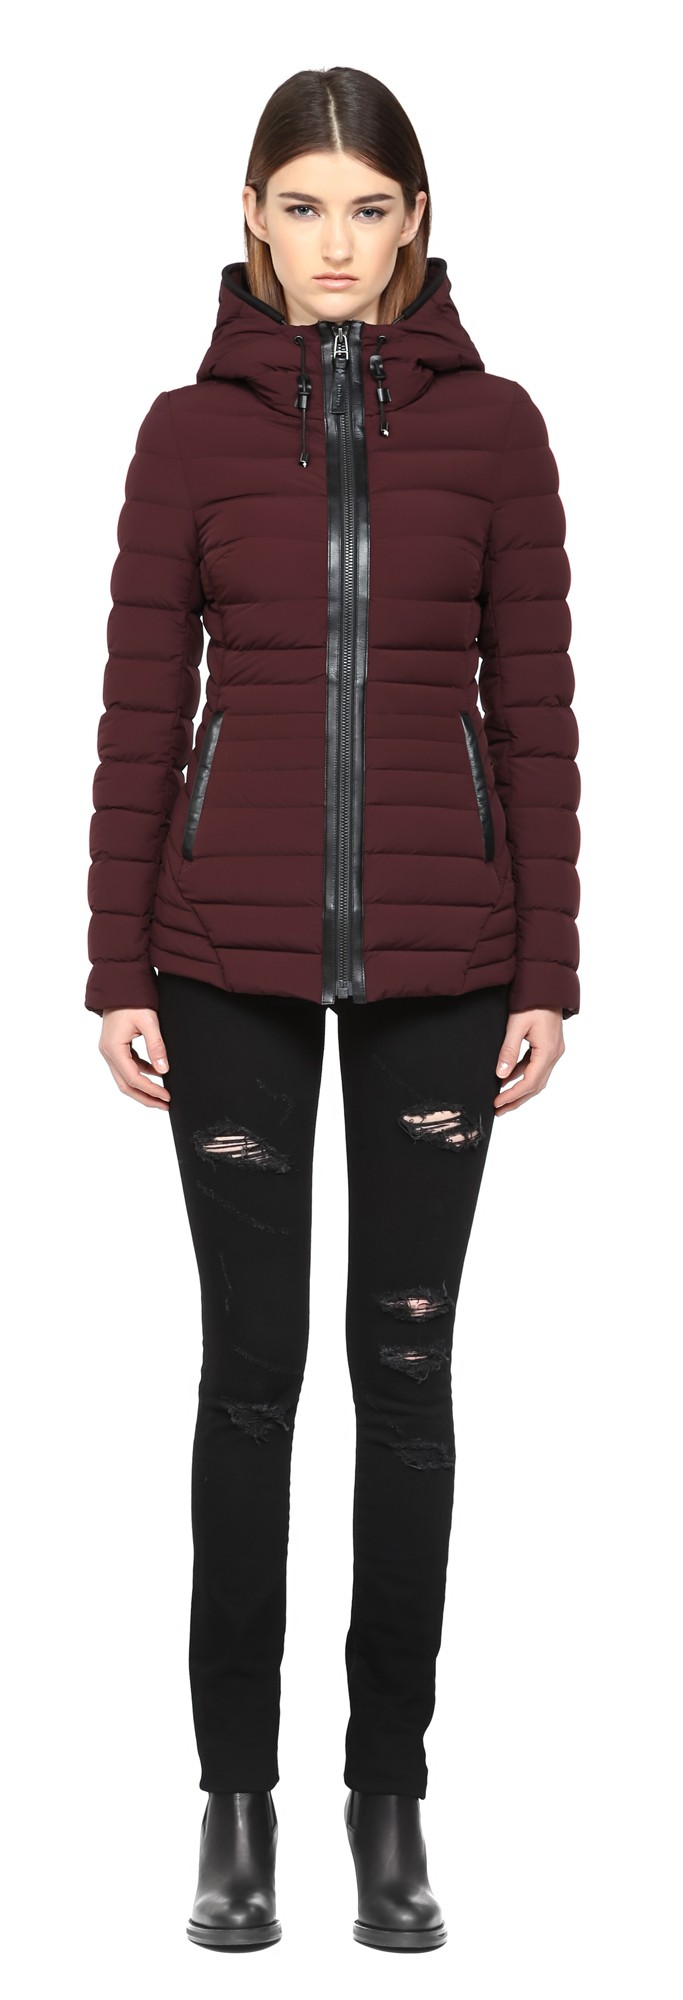 Bordeaux Lux Light Weight Down Coat With Hood Mackage Women